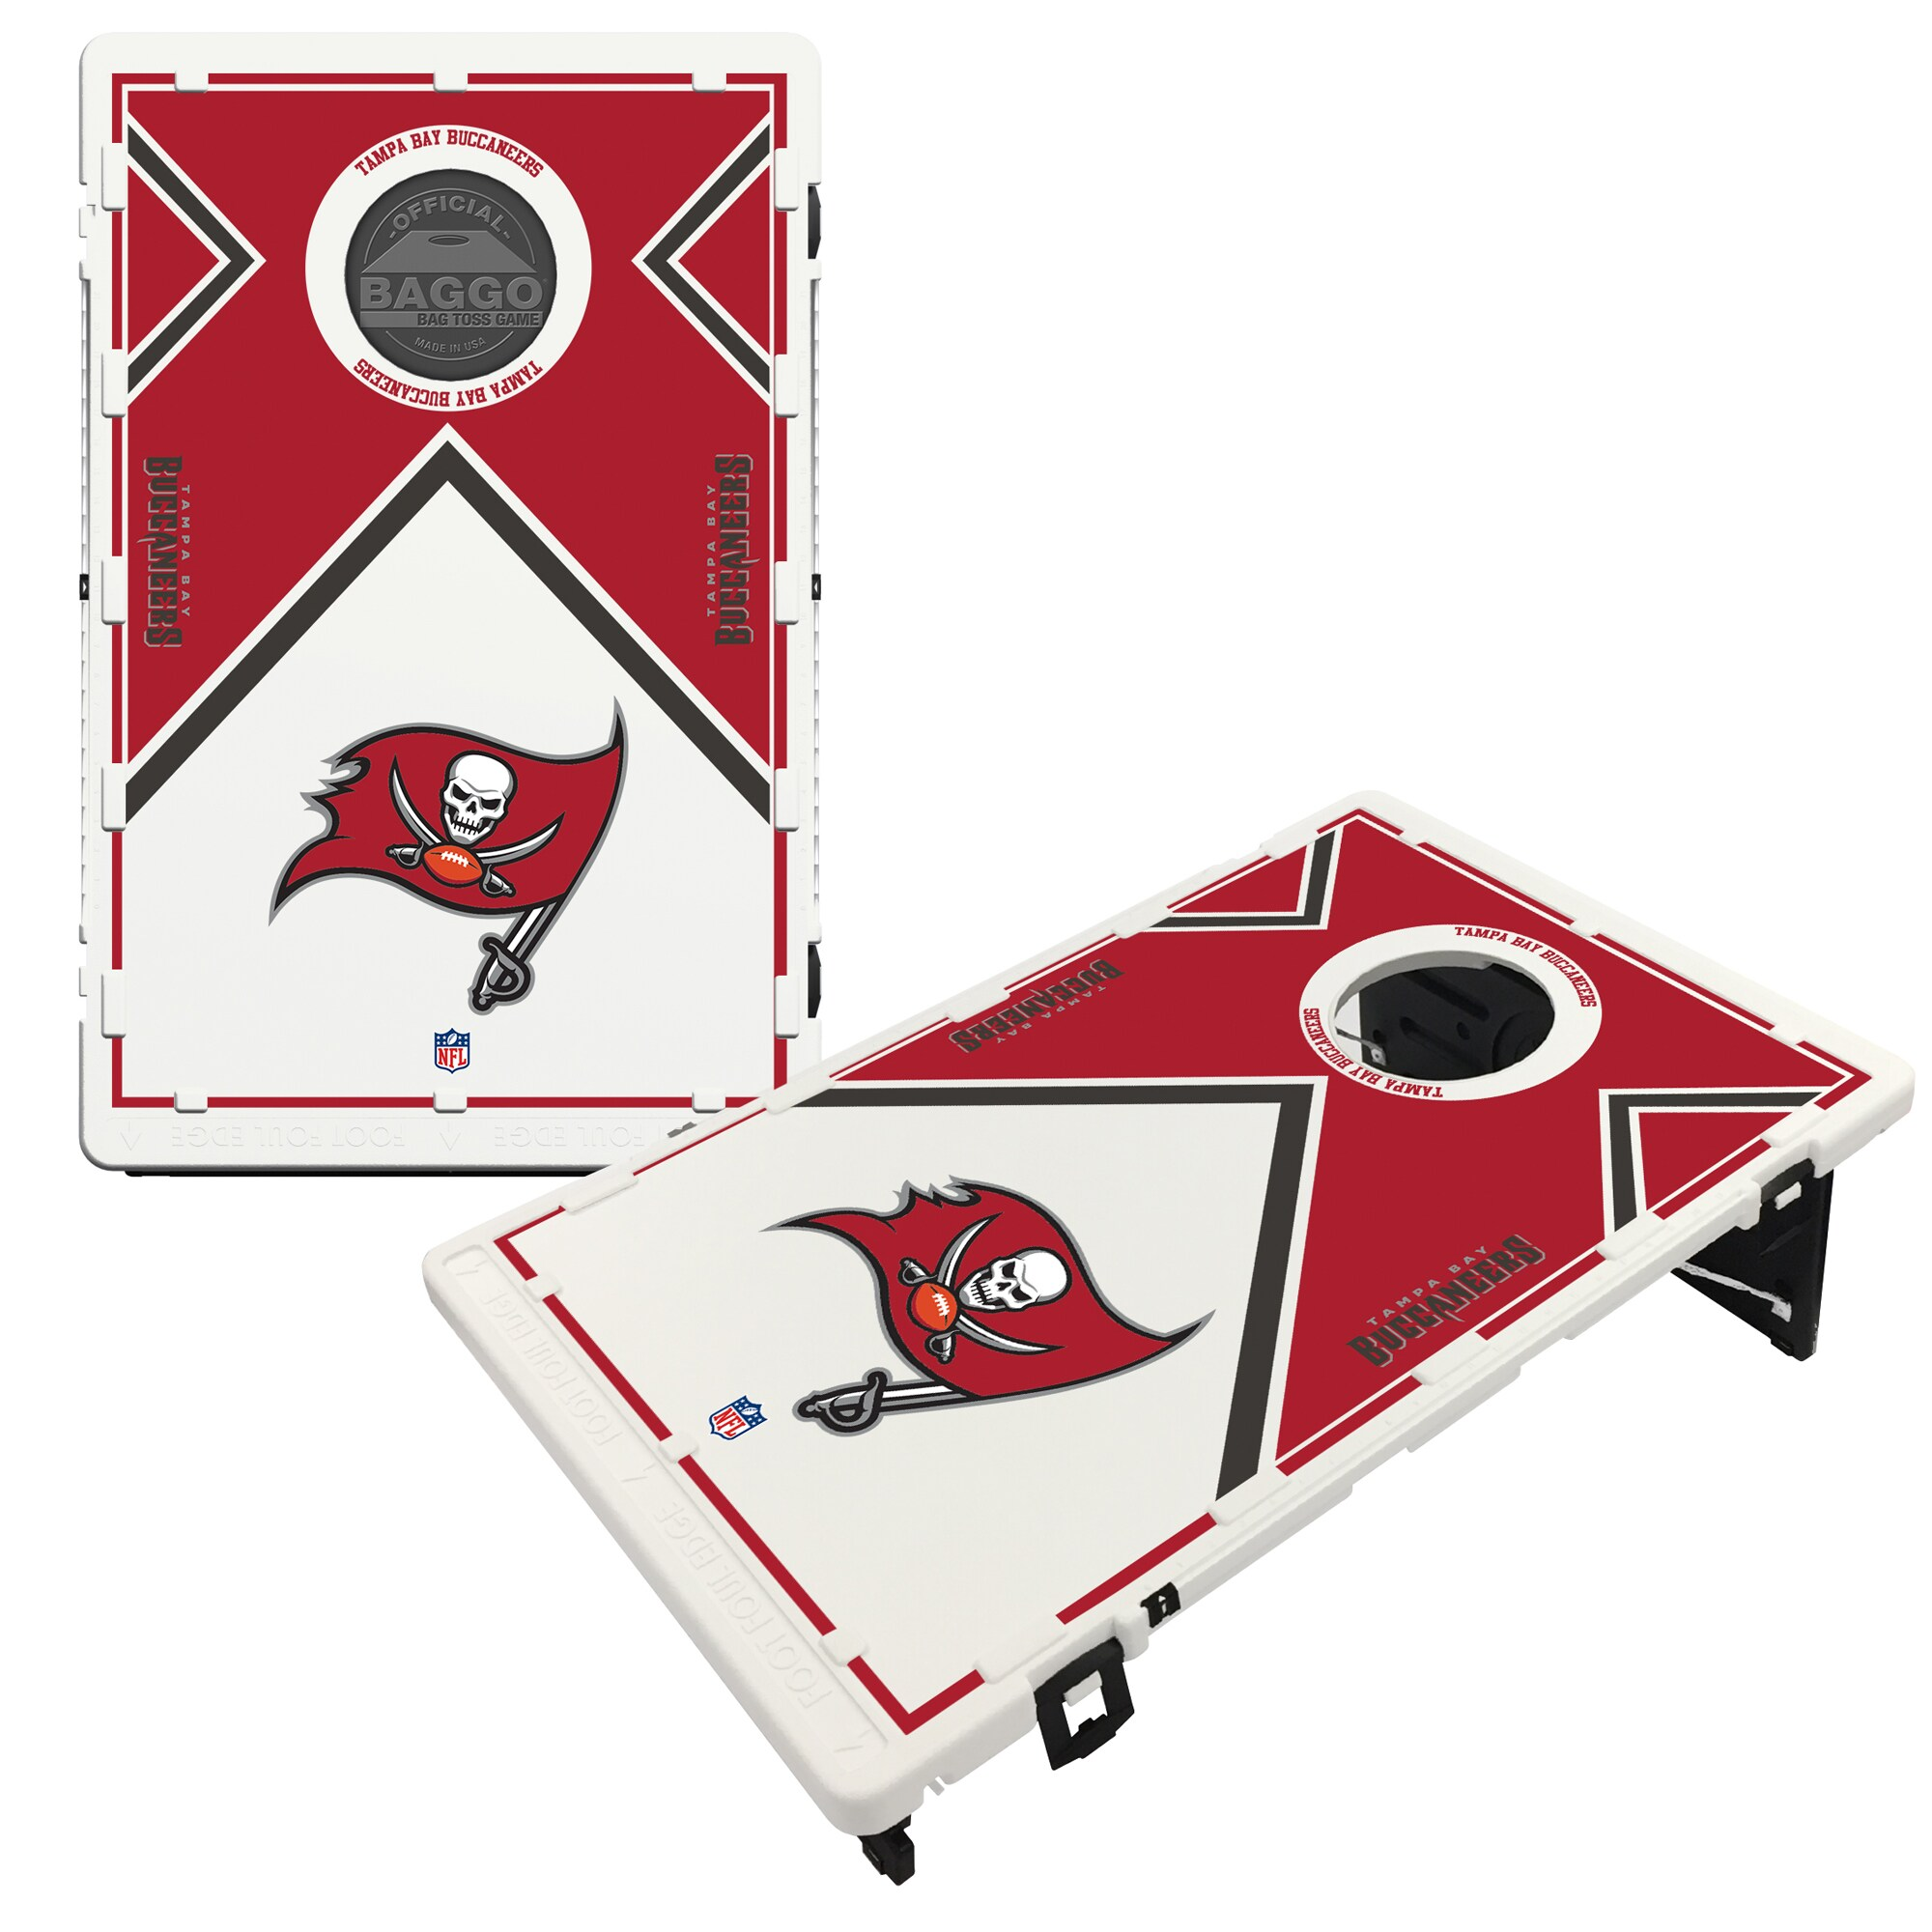 Tampa Bay Buccaneers 2' x 3' BAGGO Vintage Cornhole Board Tailgate Toss Set